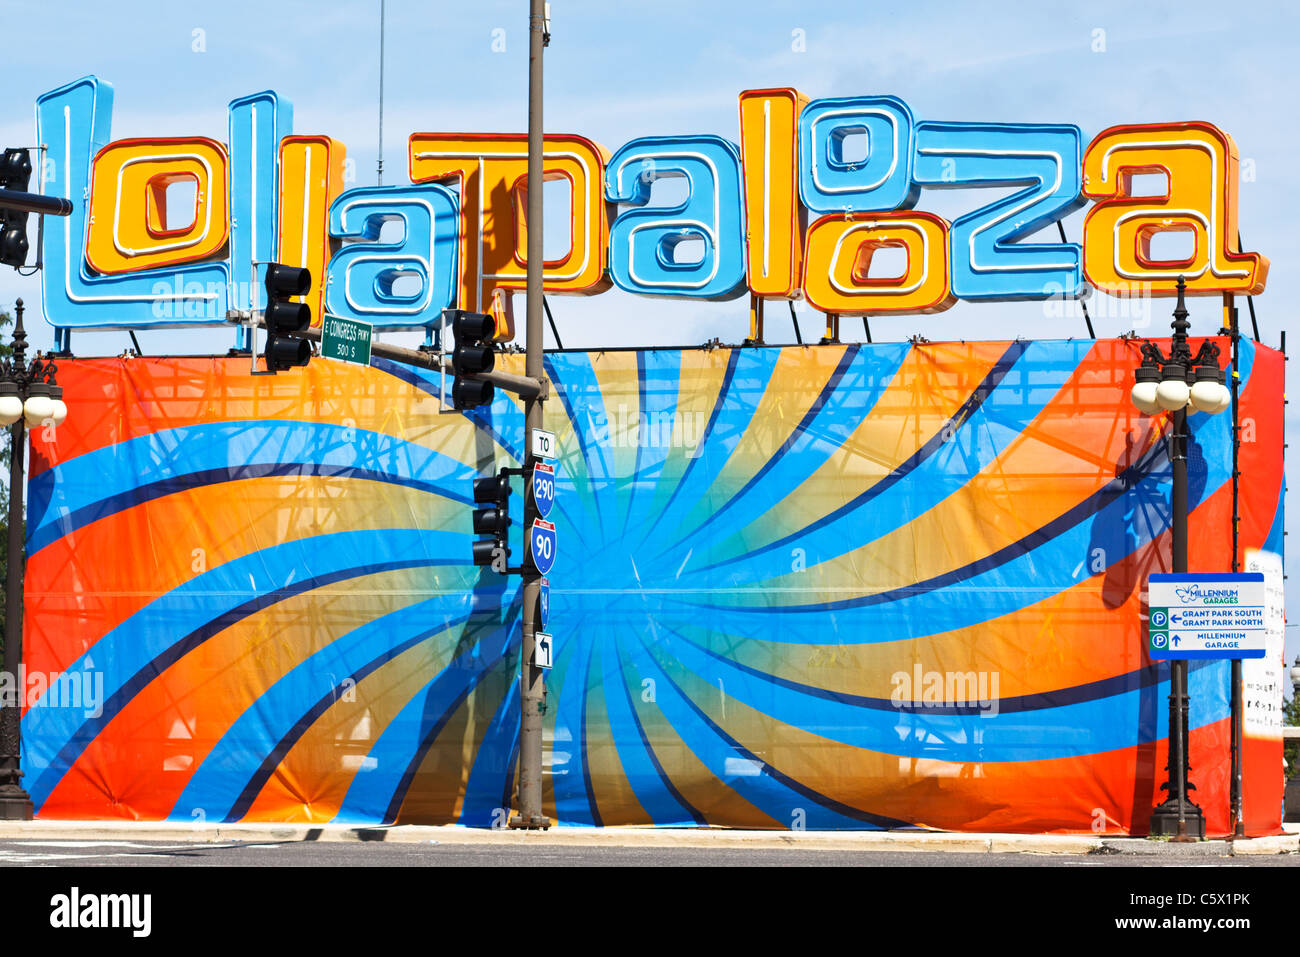 Lollapalooza sign Chicago, Illinois - Stock Image